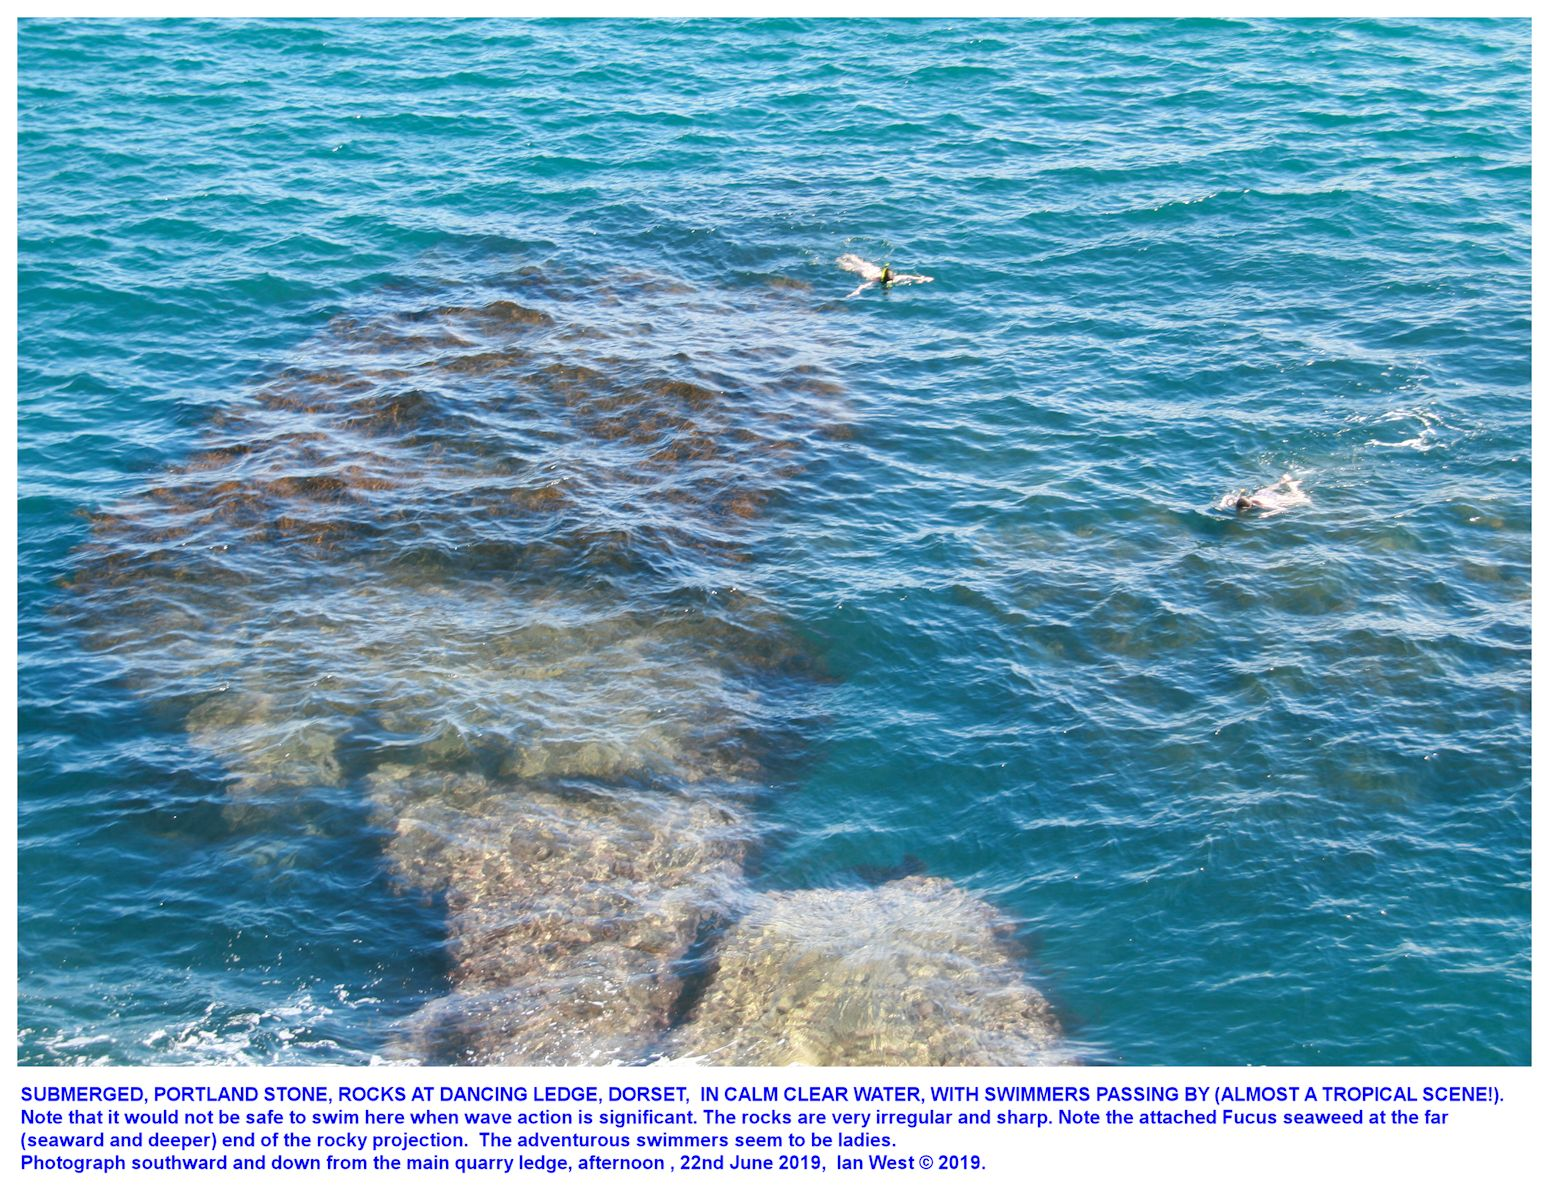 Swimmers in calm, clear seawater, just off the lower (Chert Member) sea-ledge art the Dancing Ledge quarry, Dorset, 22nd June 2019, Ian West